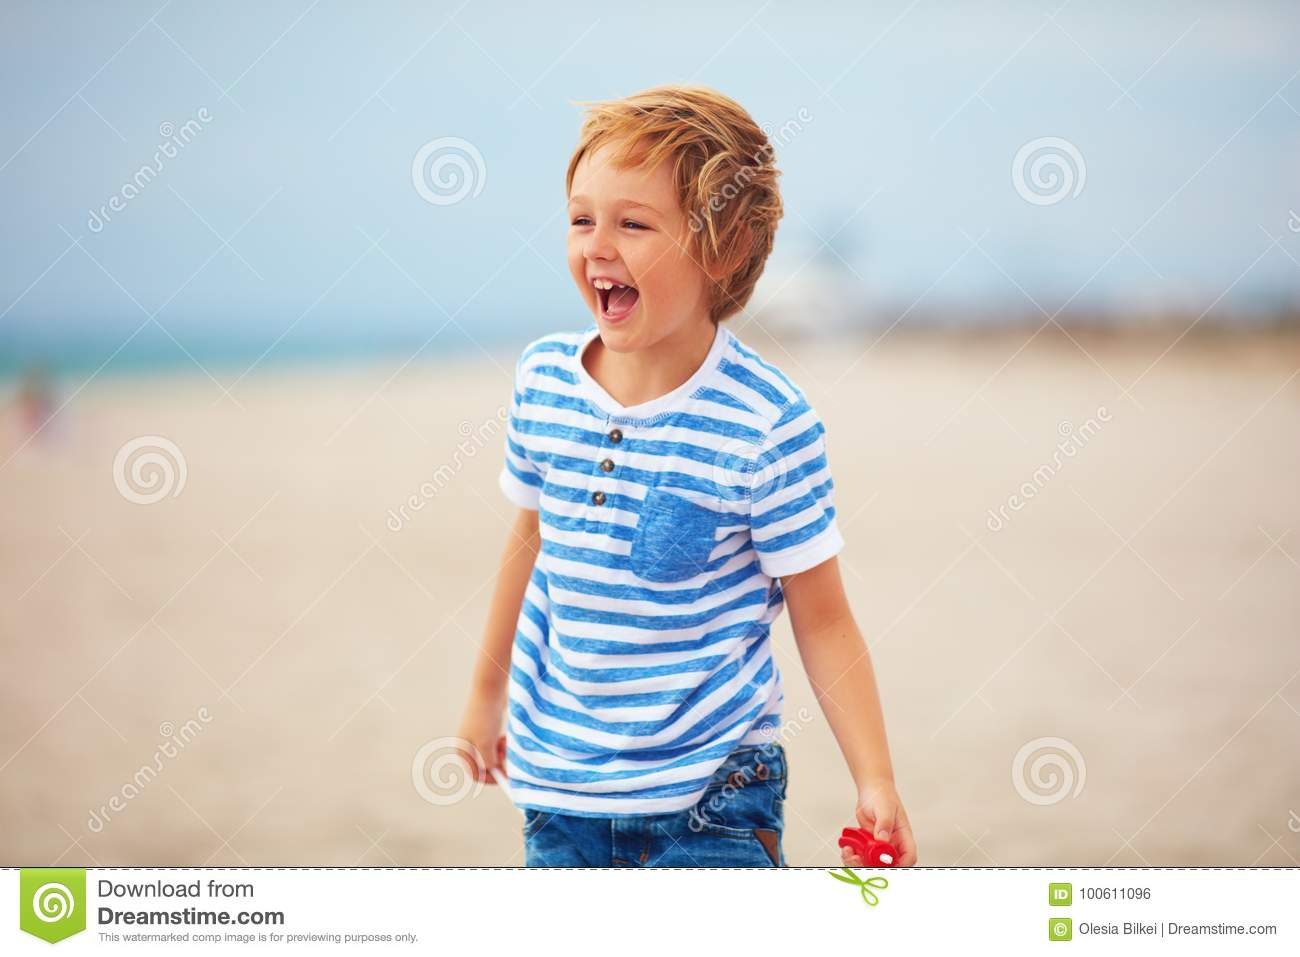 Download Young Delighted Boy, Kid Playing With A Toy Propeller, Having Fun On Summer Beach Stock Photo - Image of airscrew, life: 100611096